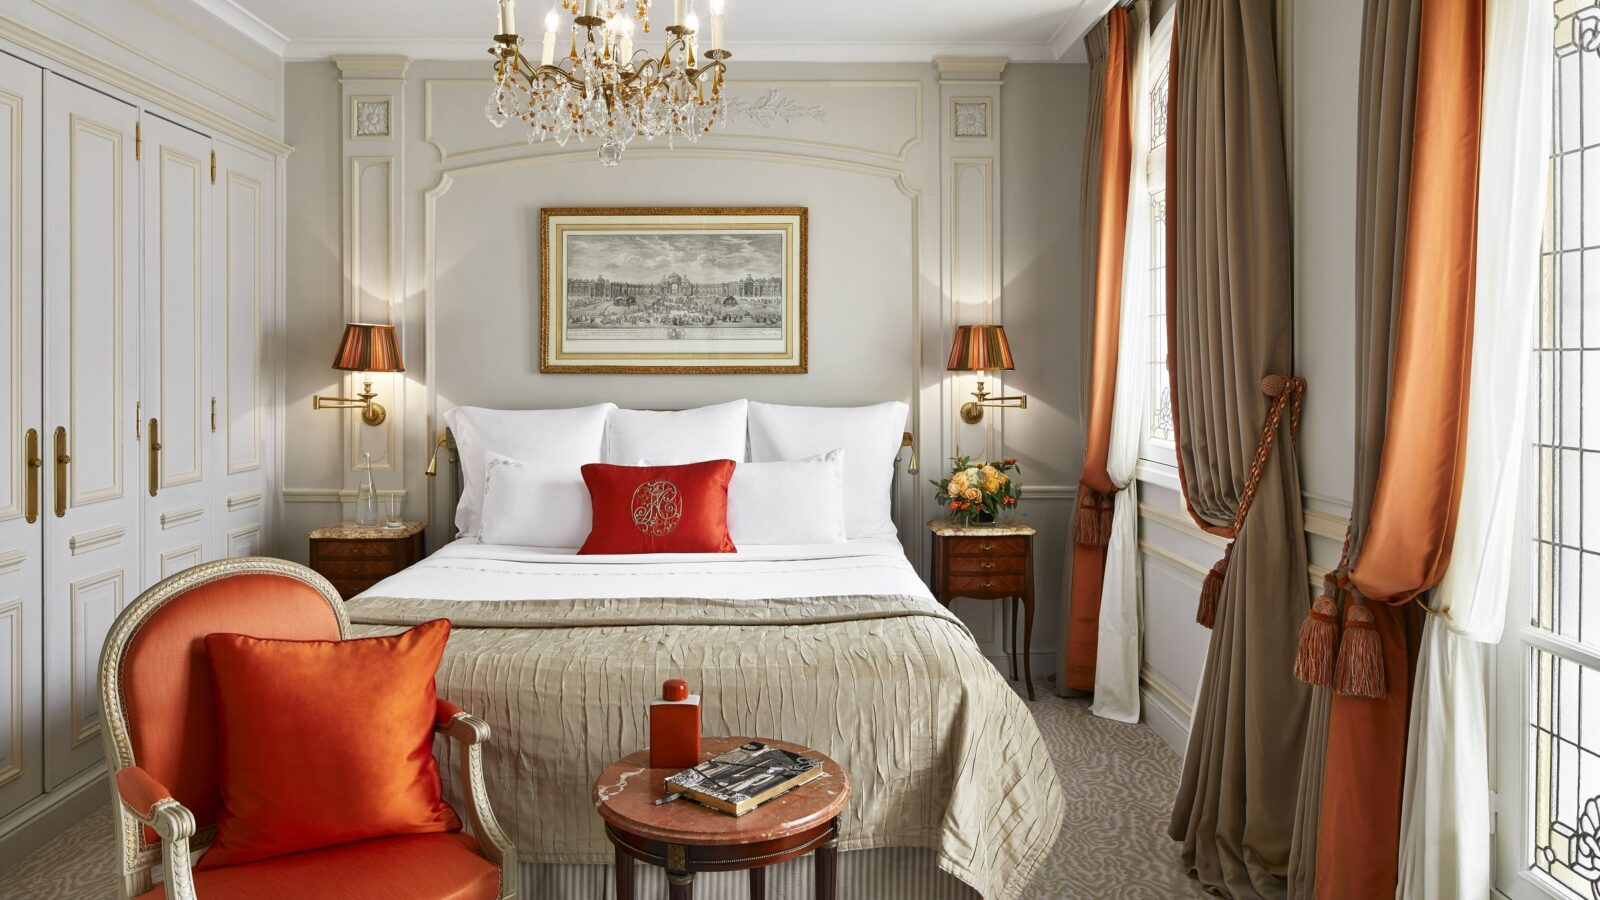 Superior Suite at Hôtel Plaza Athénée, Paris